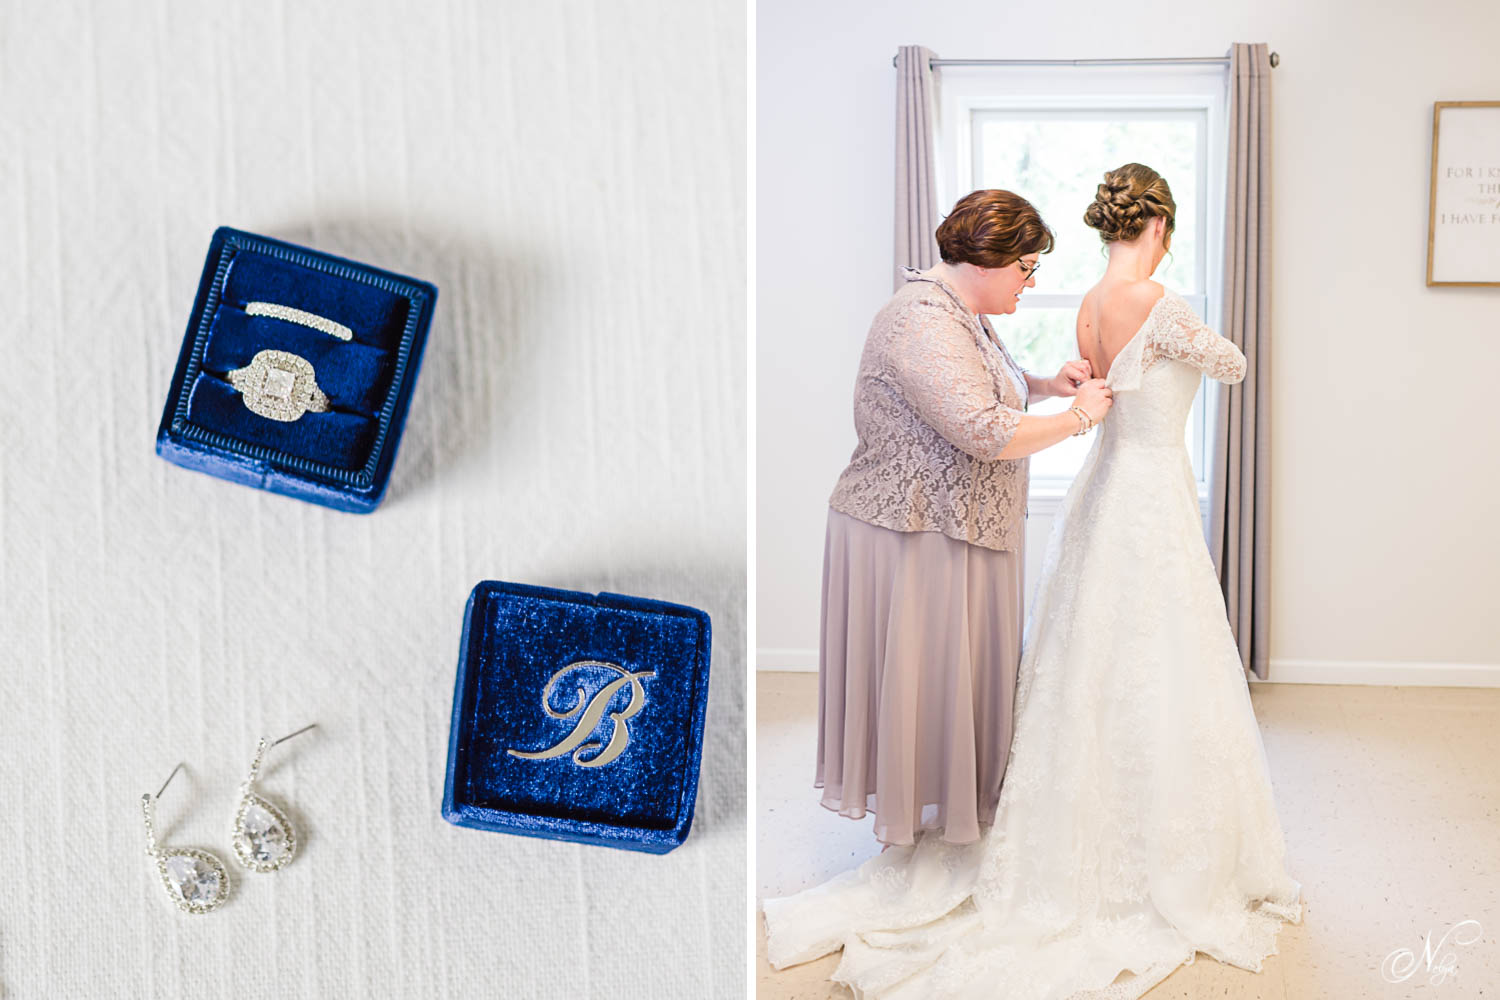 blue velvet mrs ring box with monogramed lid. And mother buttoning bride's wedding dress